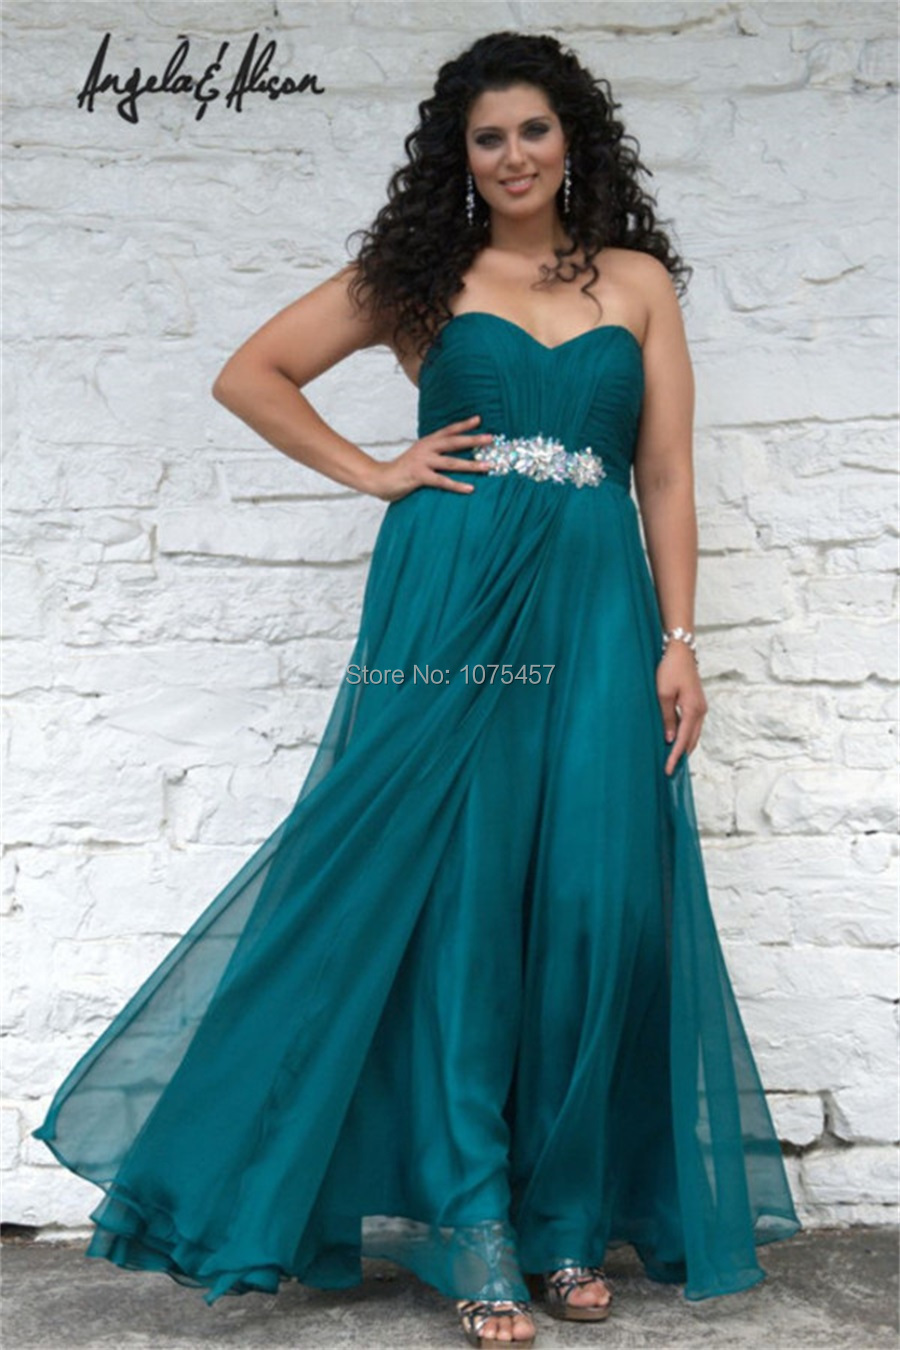 Free Shipping Women Turquoise Prom Dresses Plus Size 2015 Party ...